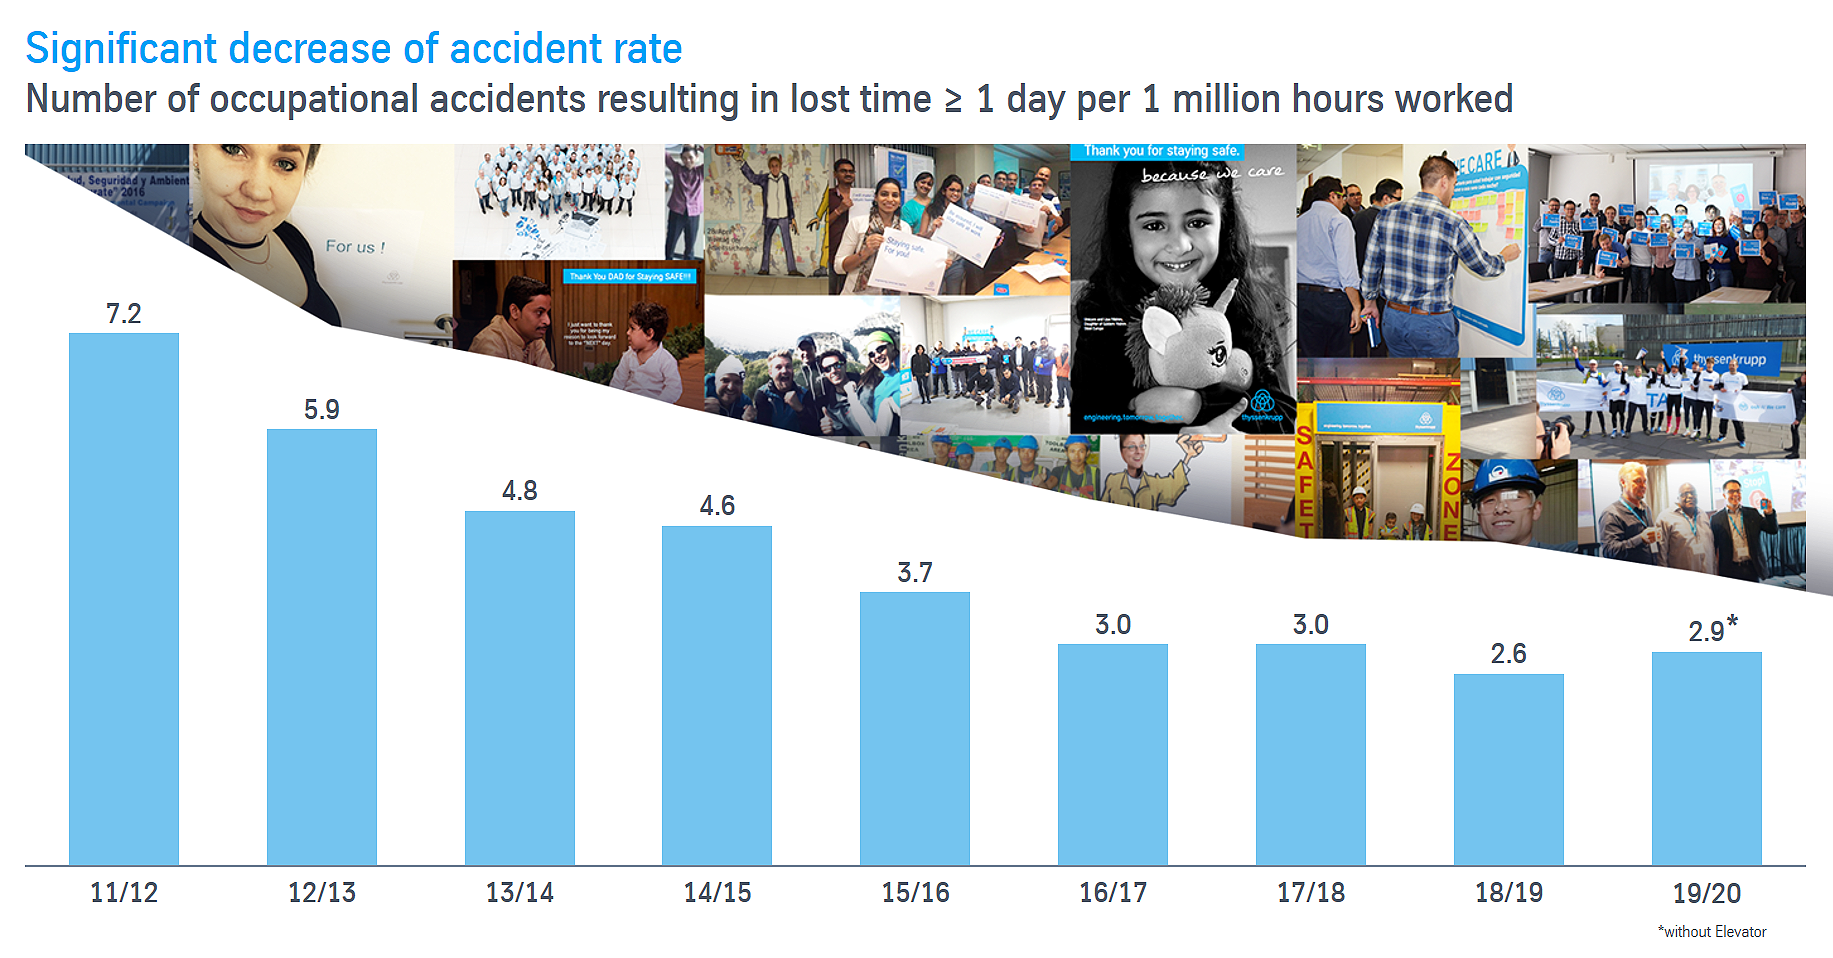 Occupational accident rate